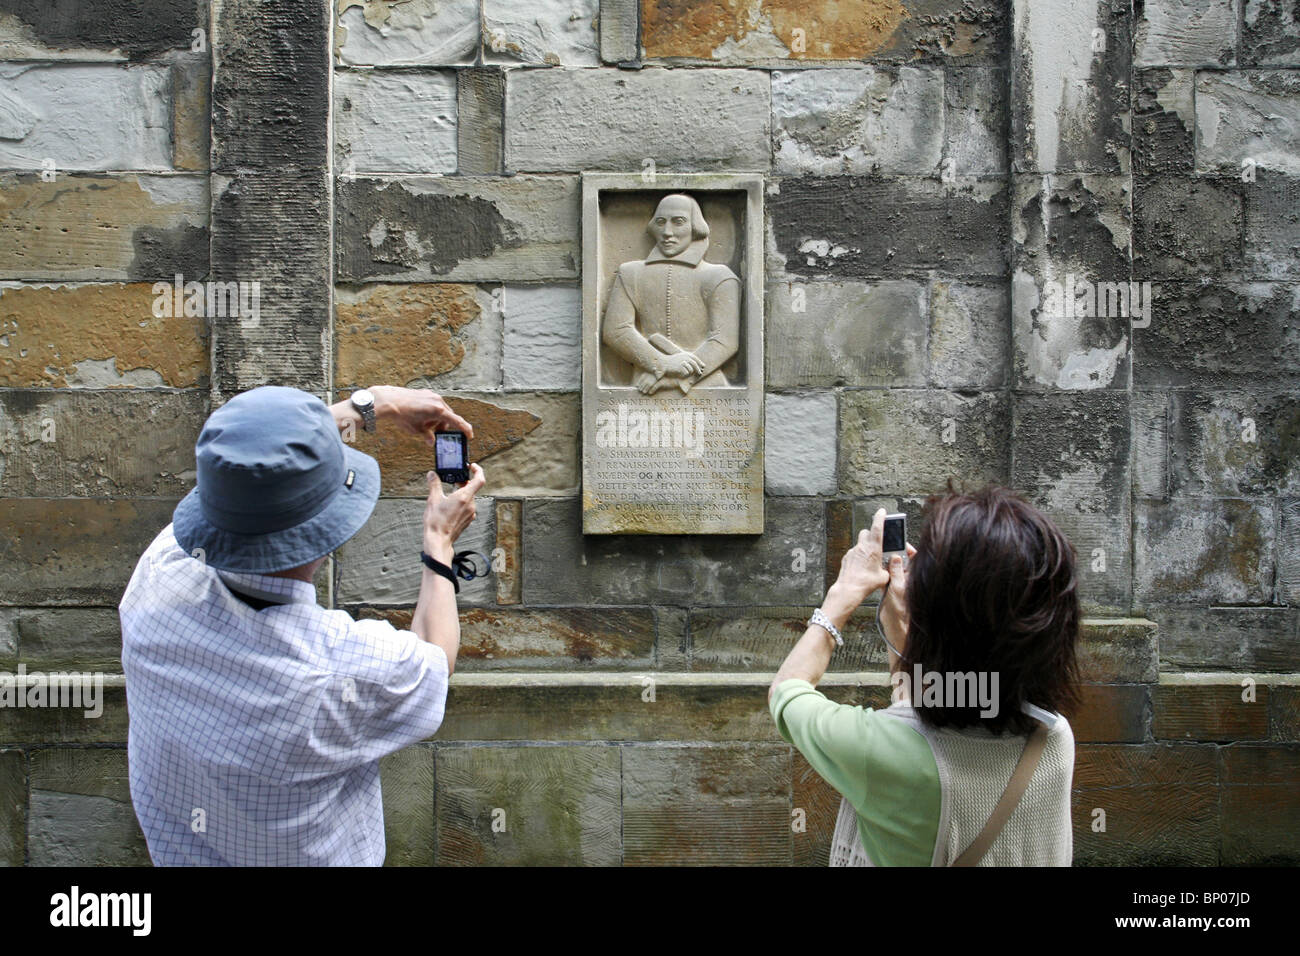 William Shakespeare Monument, Kronborg Castle, Helsingør, Zealand, Denmark - Stock Image